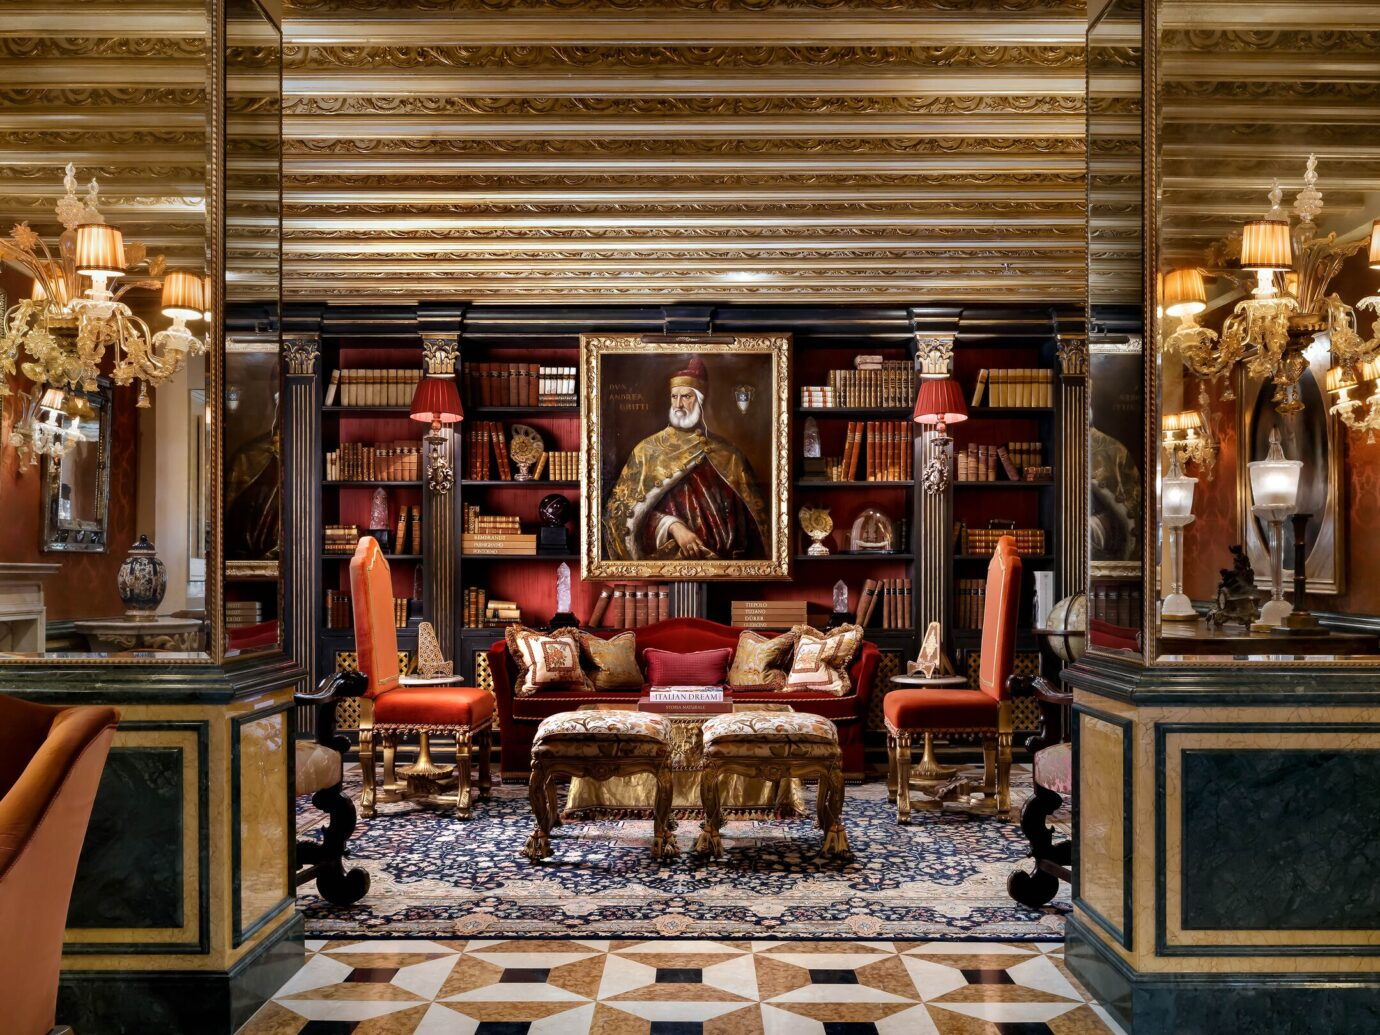 Library at Gritti Palace, Venice